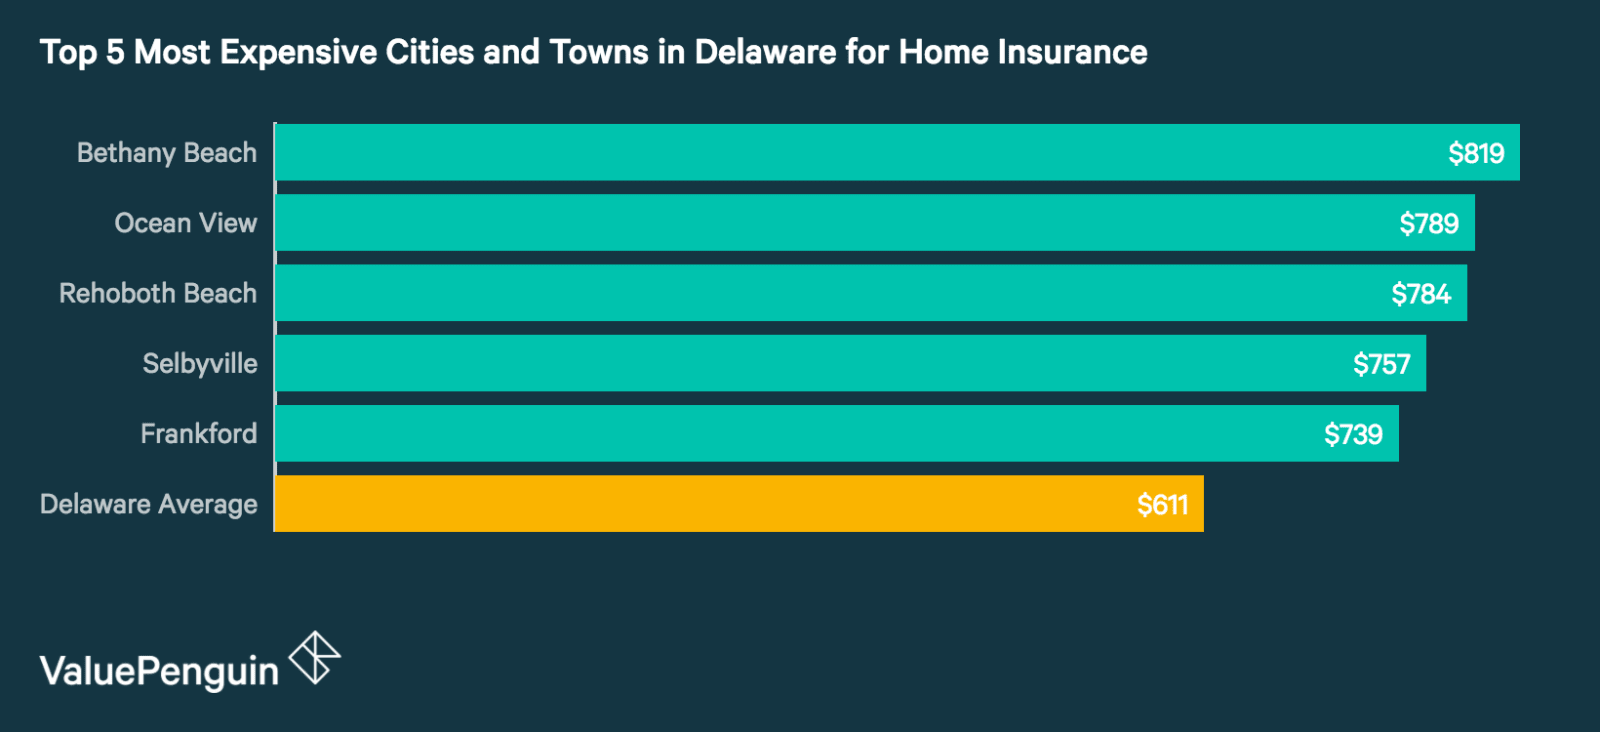 Top 5 Most Expensive Cities and Towns in Delaware for Homeowners Insurance